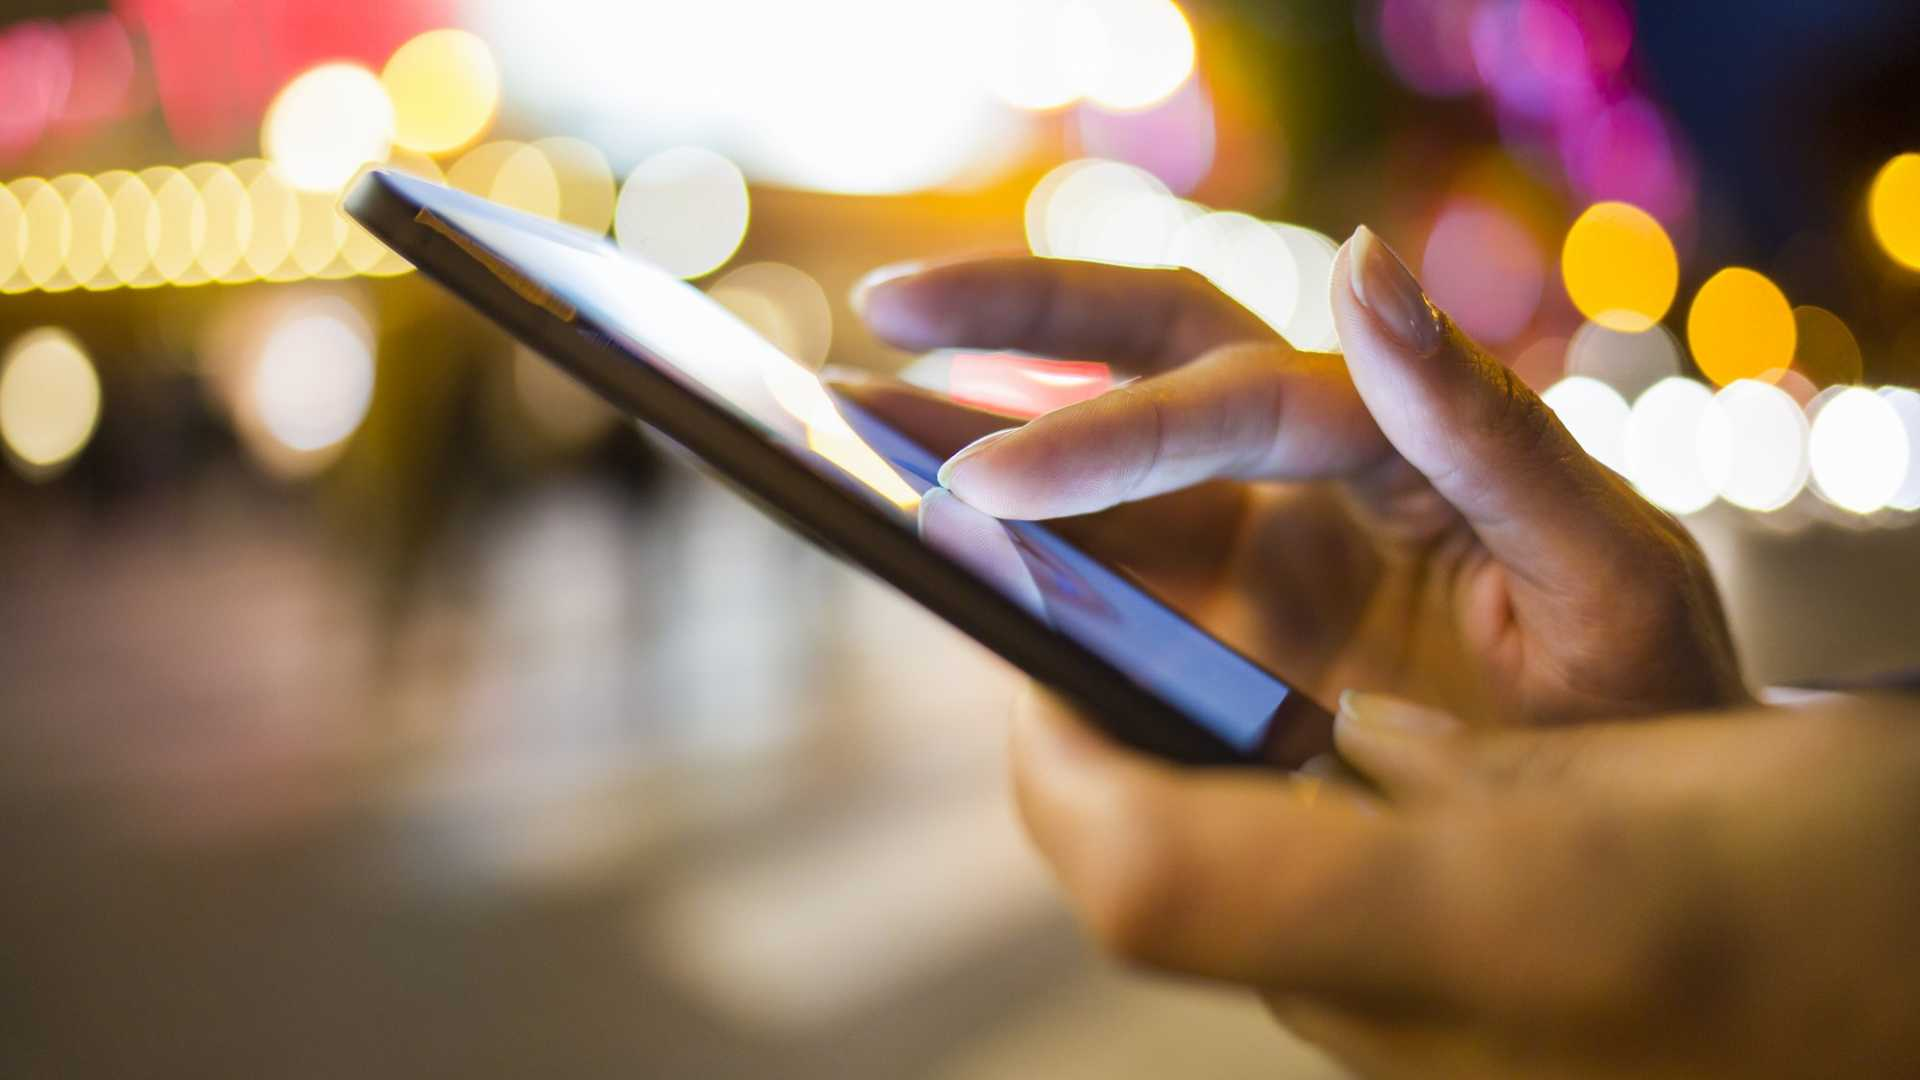 6 Apps That Will Make You Life and Work Better